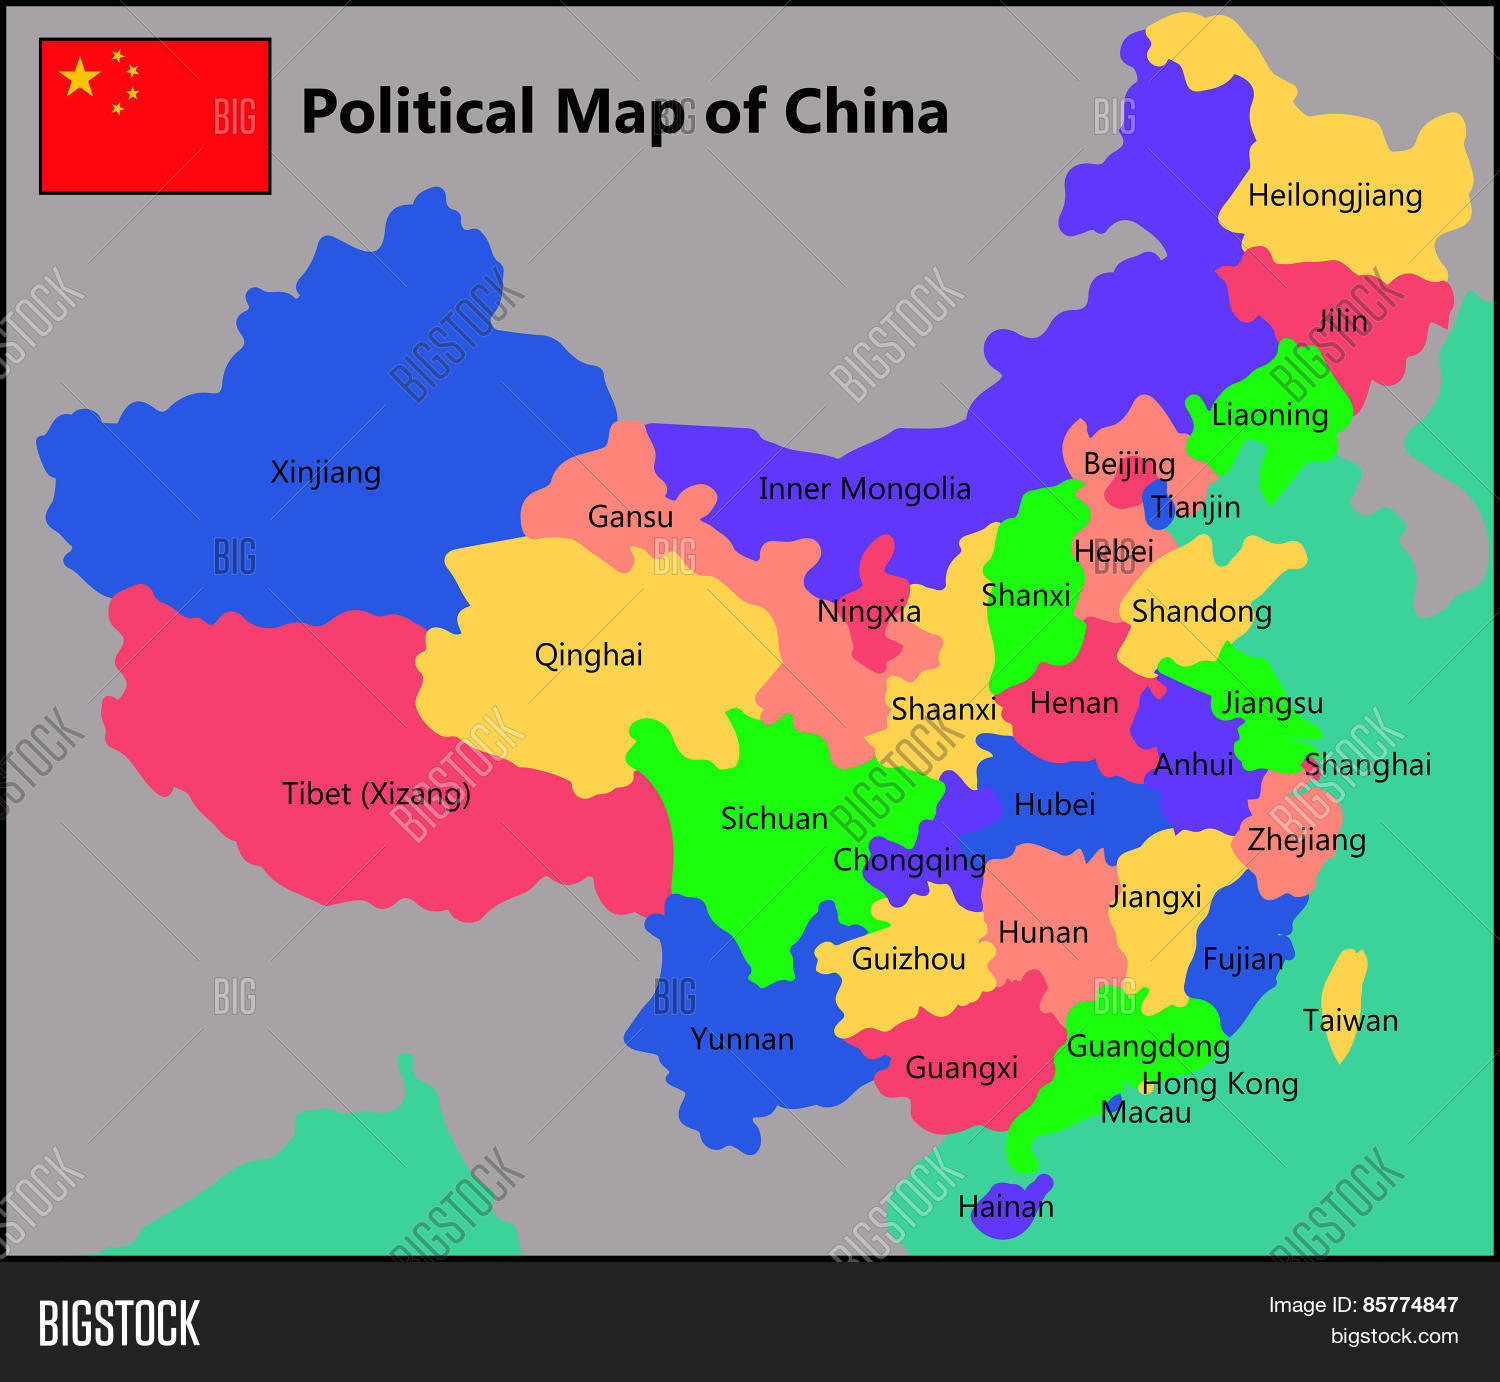 Political Map Of China Political Map China Vector & Photo (Free Trial) | Bigstock